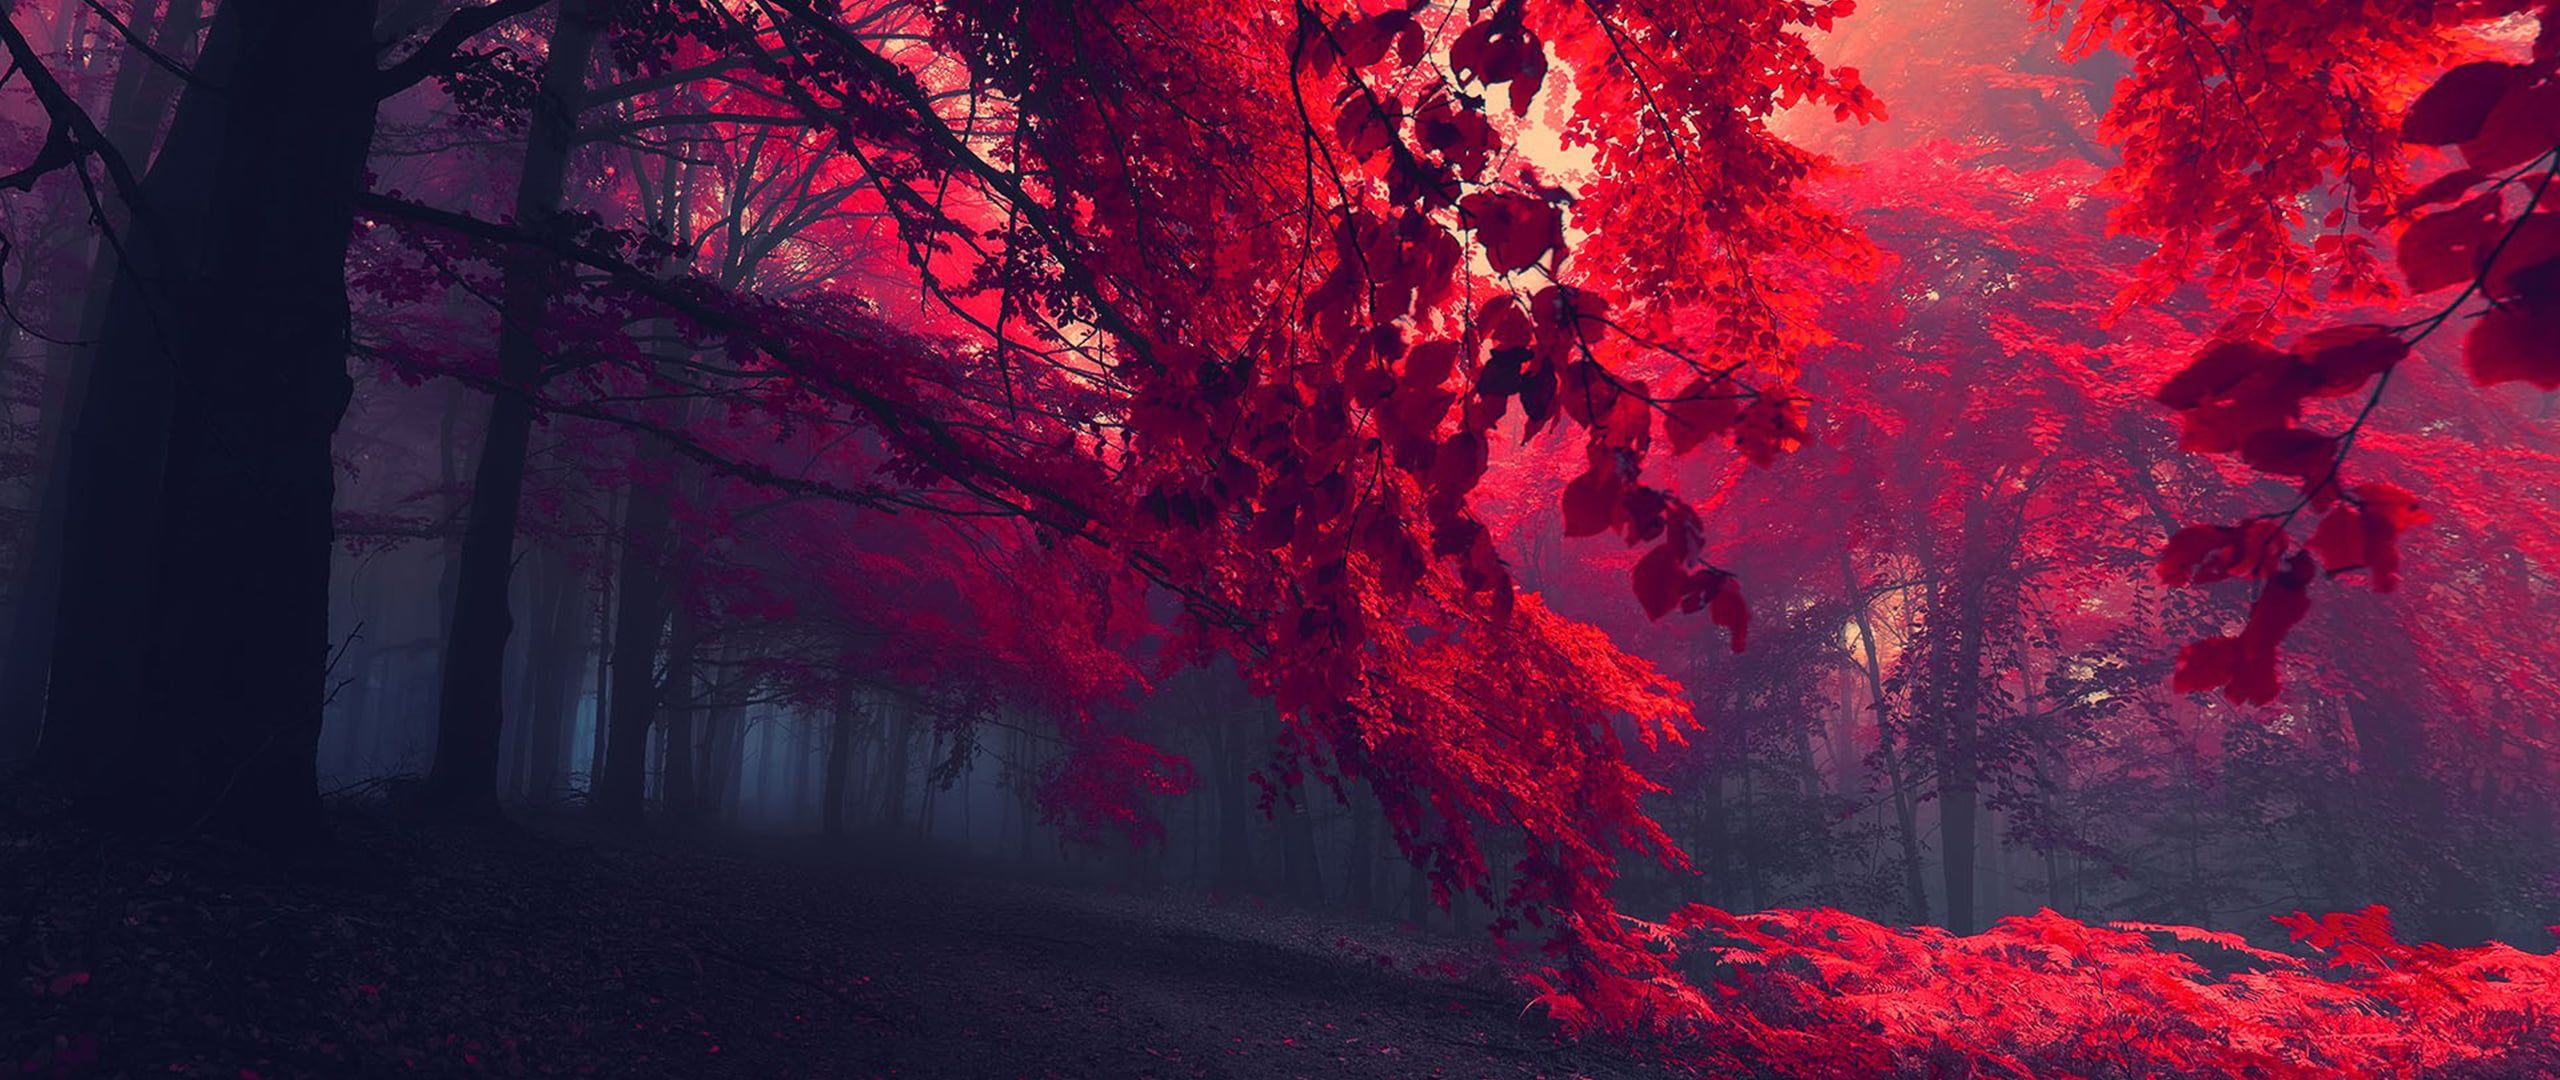 red leafed trees ultra wide photography nature 2K wallpaper 2560x1080